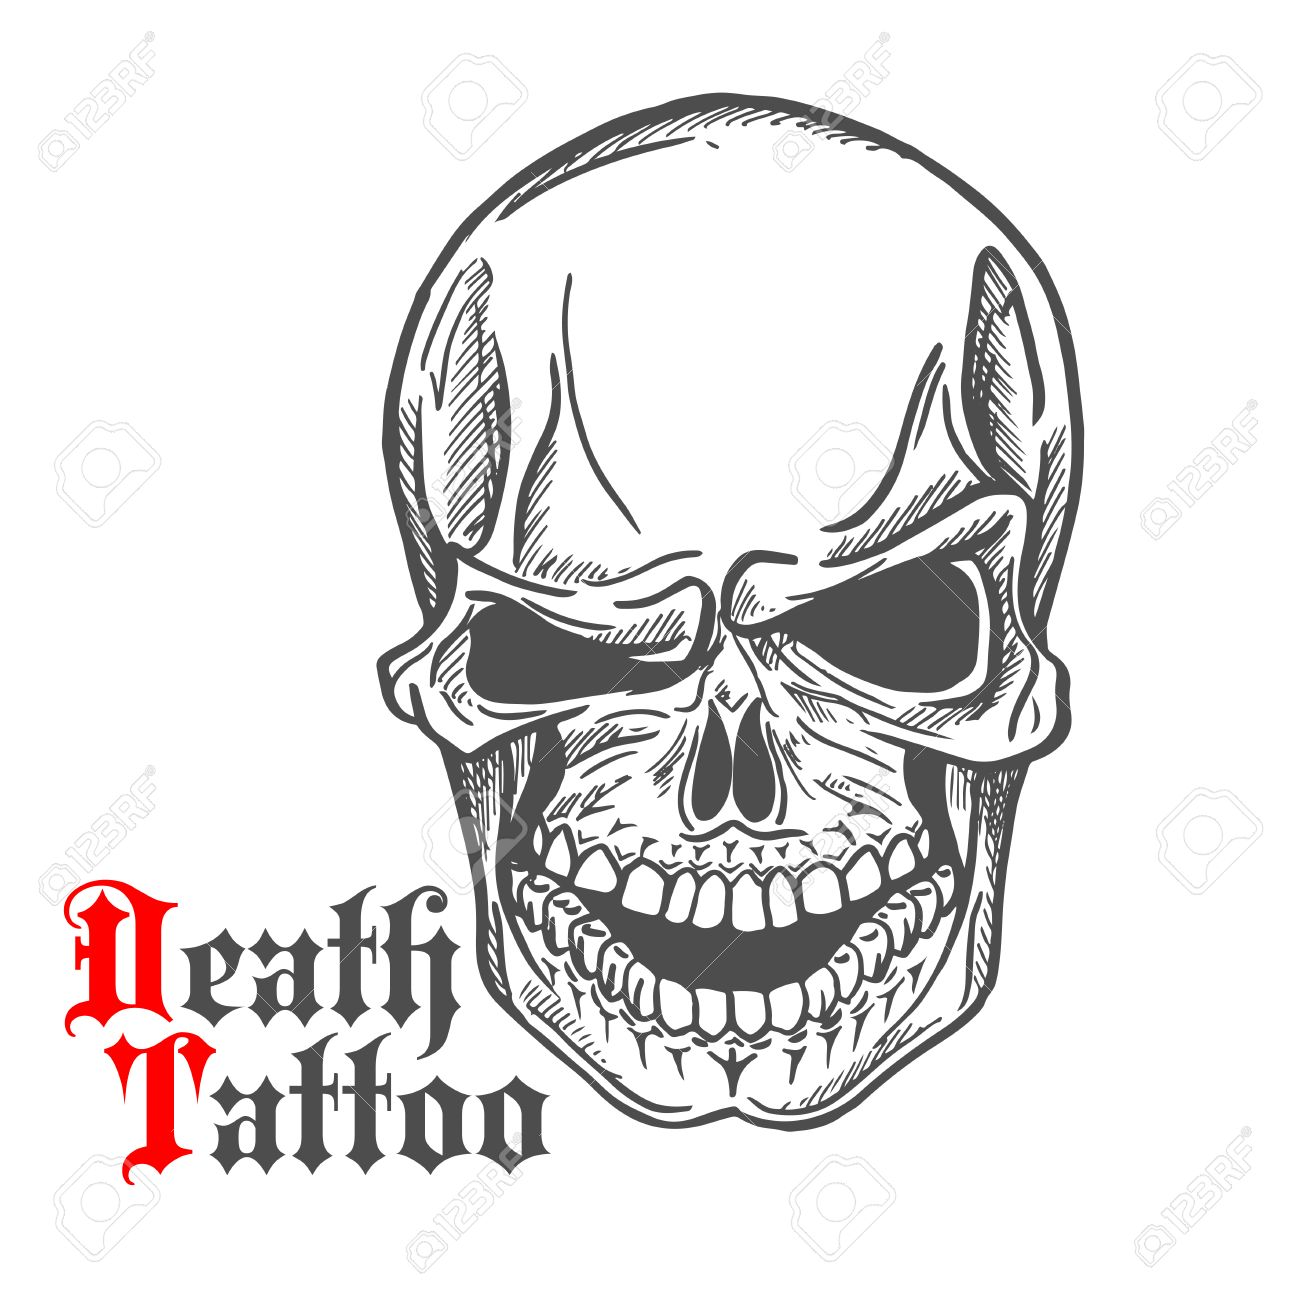 1300x1300 Dark Gray Human Skull Sketch With Spooky Smile And Caption Death